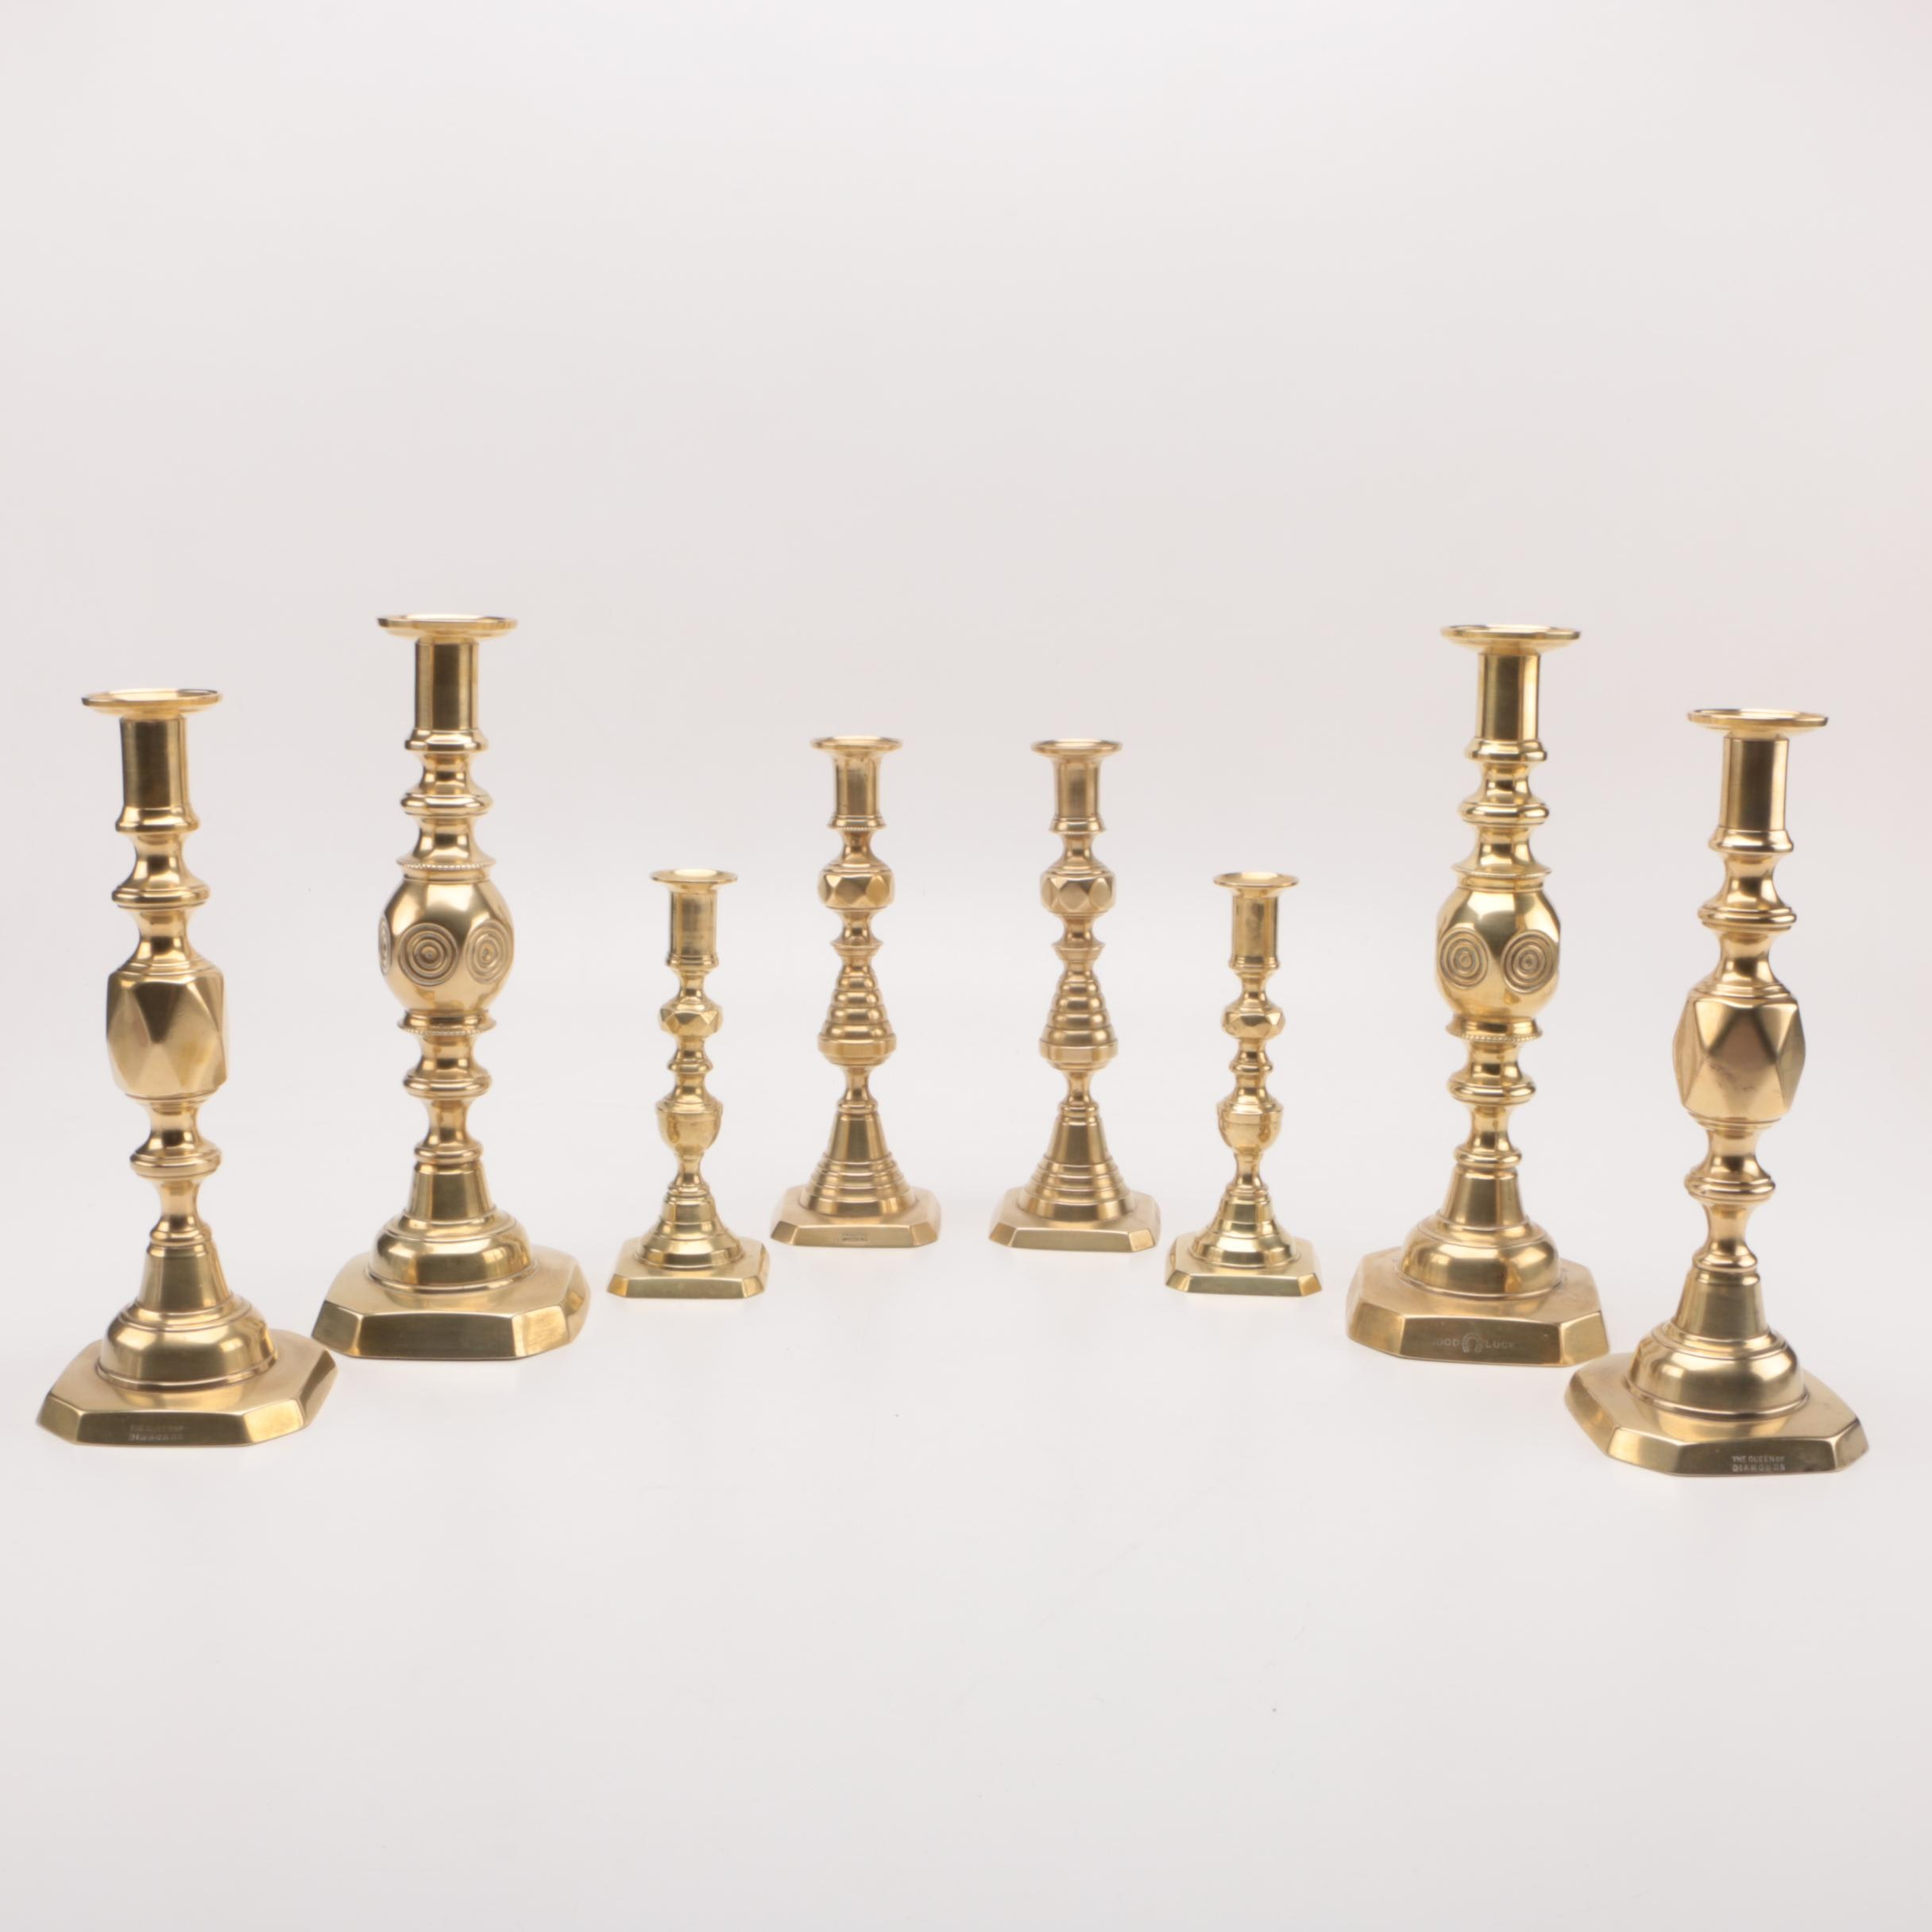 Semi-Antique to Antique Brass Push Up Candlesticks